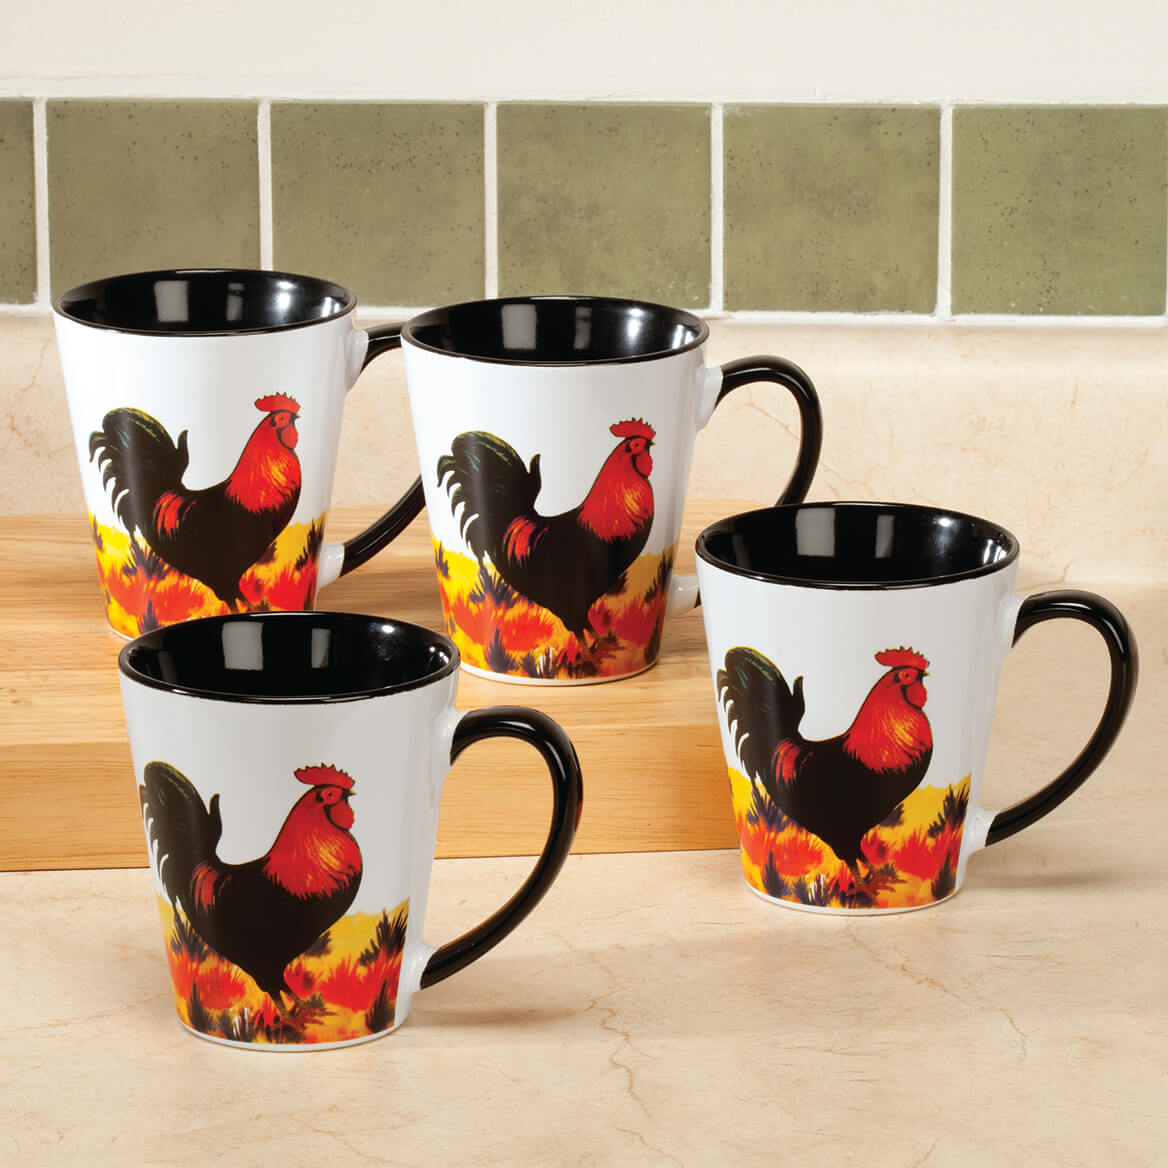 8 oz Rooster Mugs Set of 4-361968